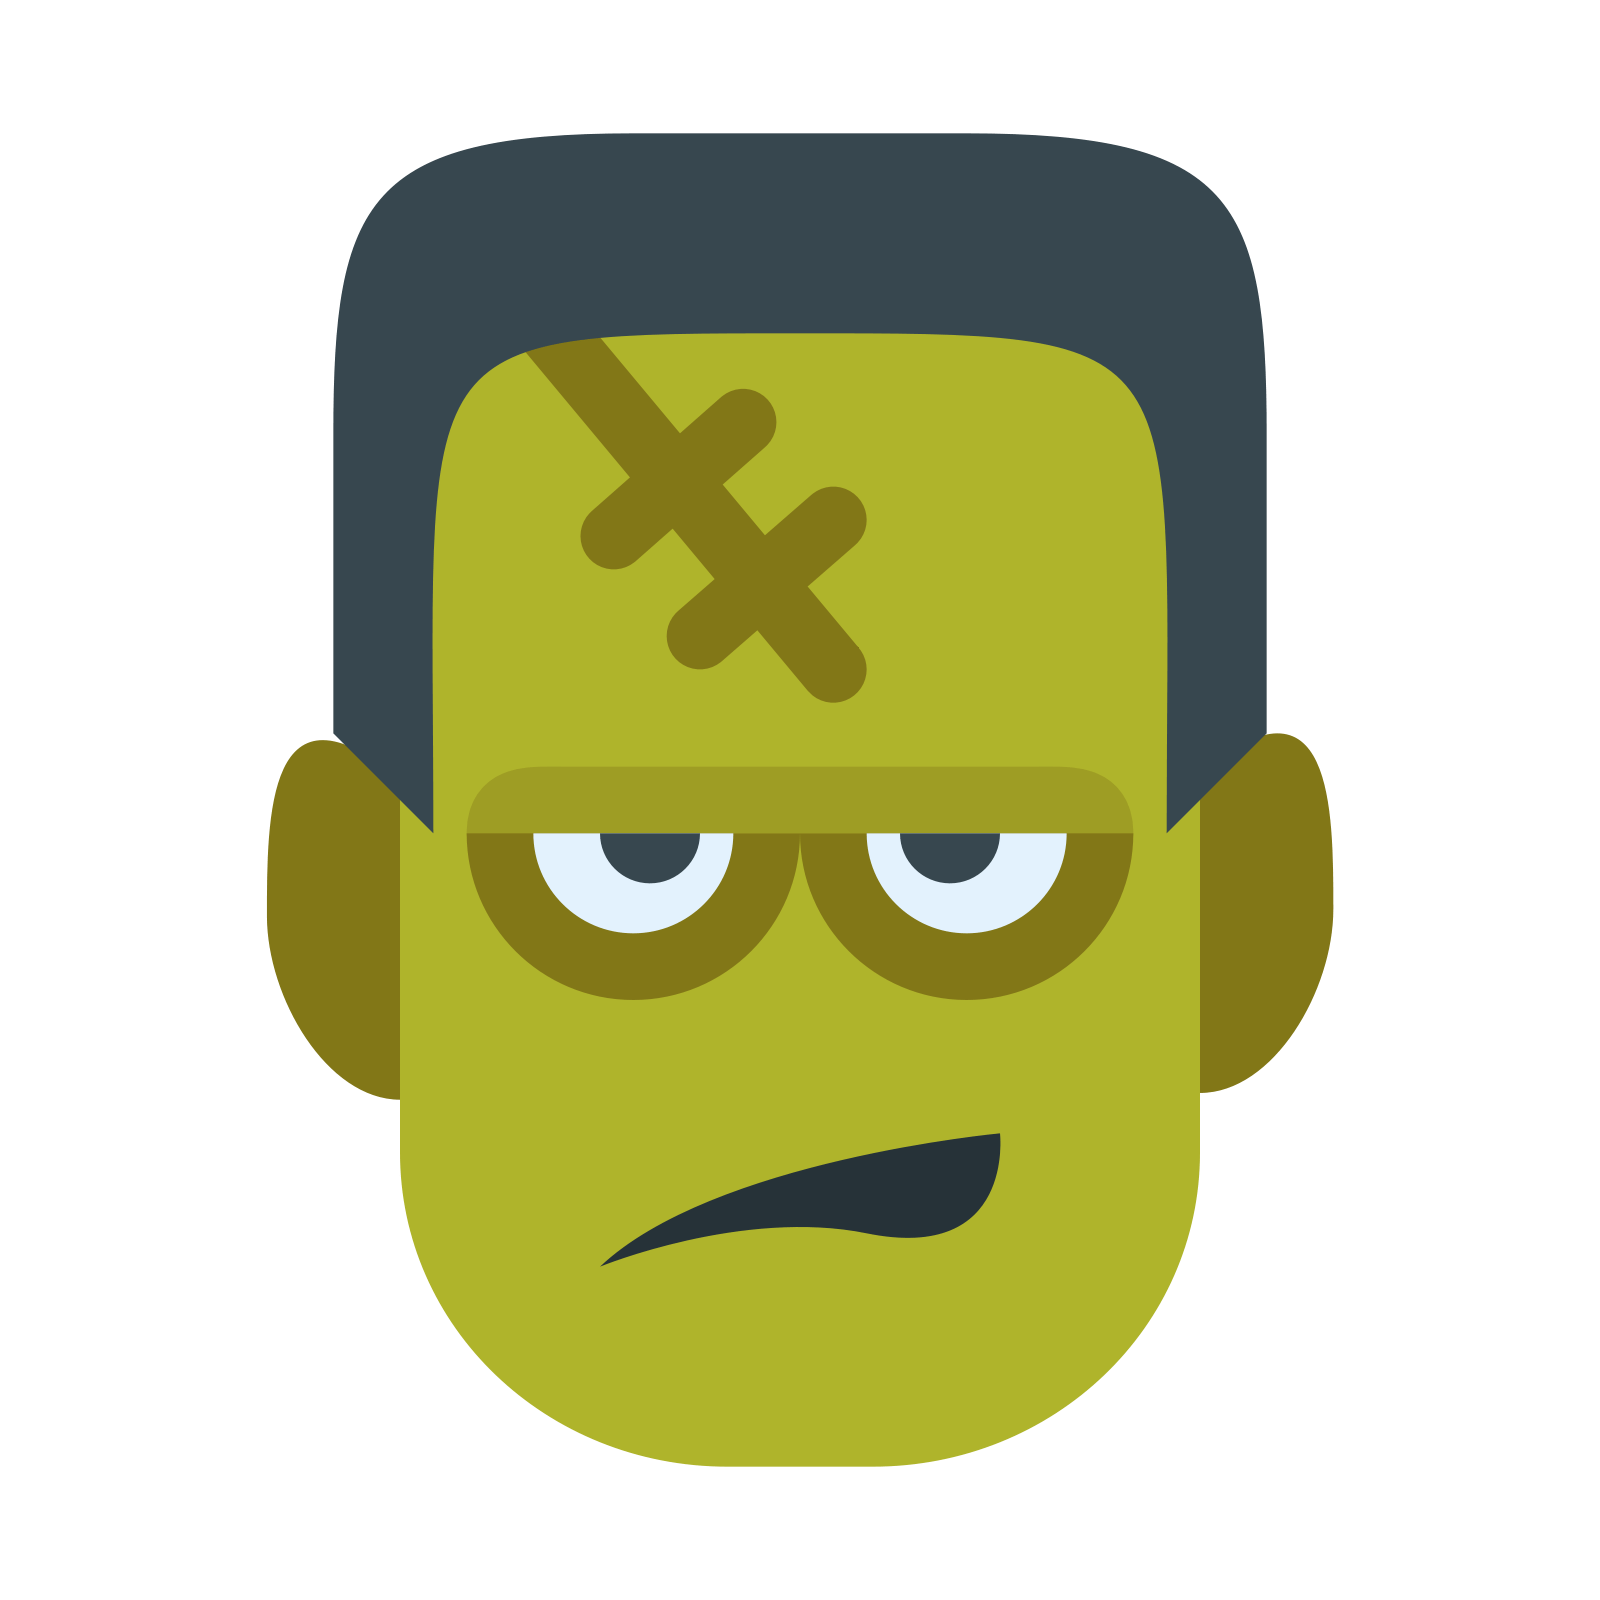 Frankenstein clipart with transparent background. Colour icon png stickpng